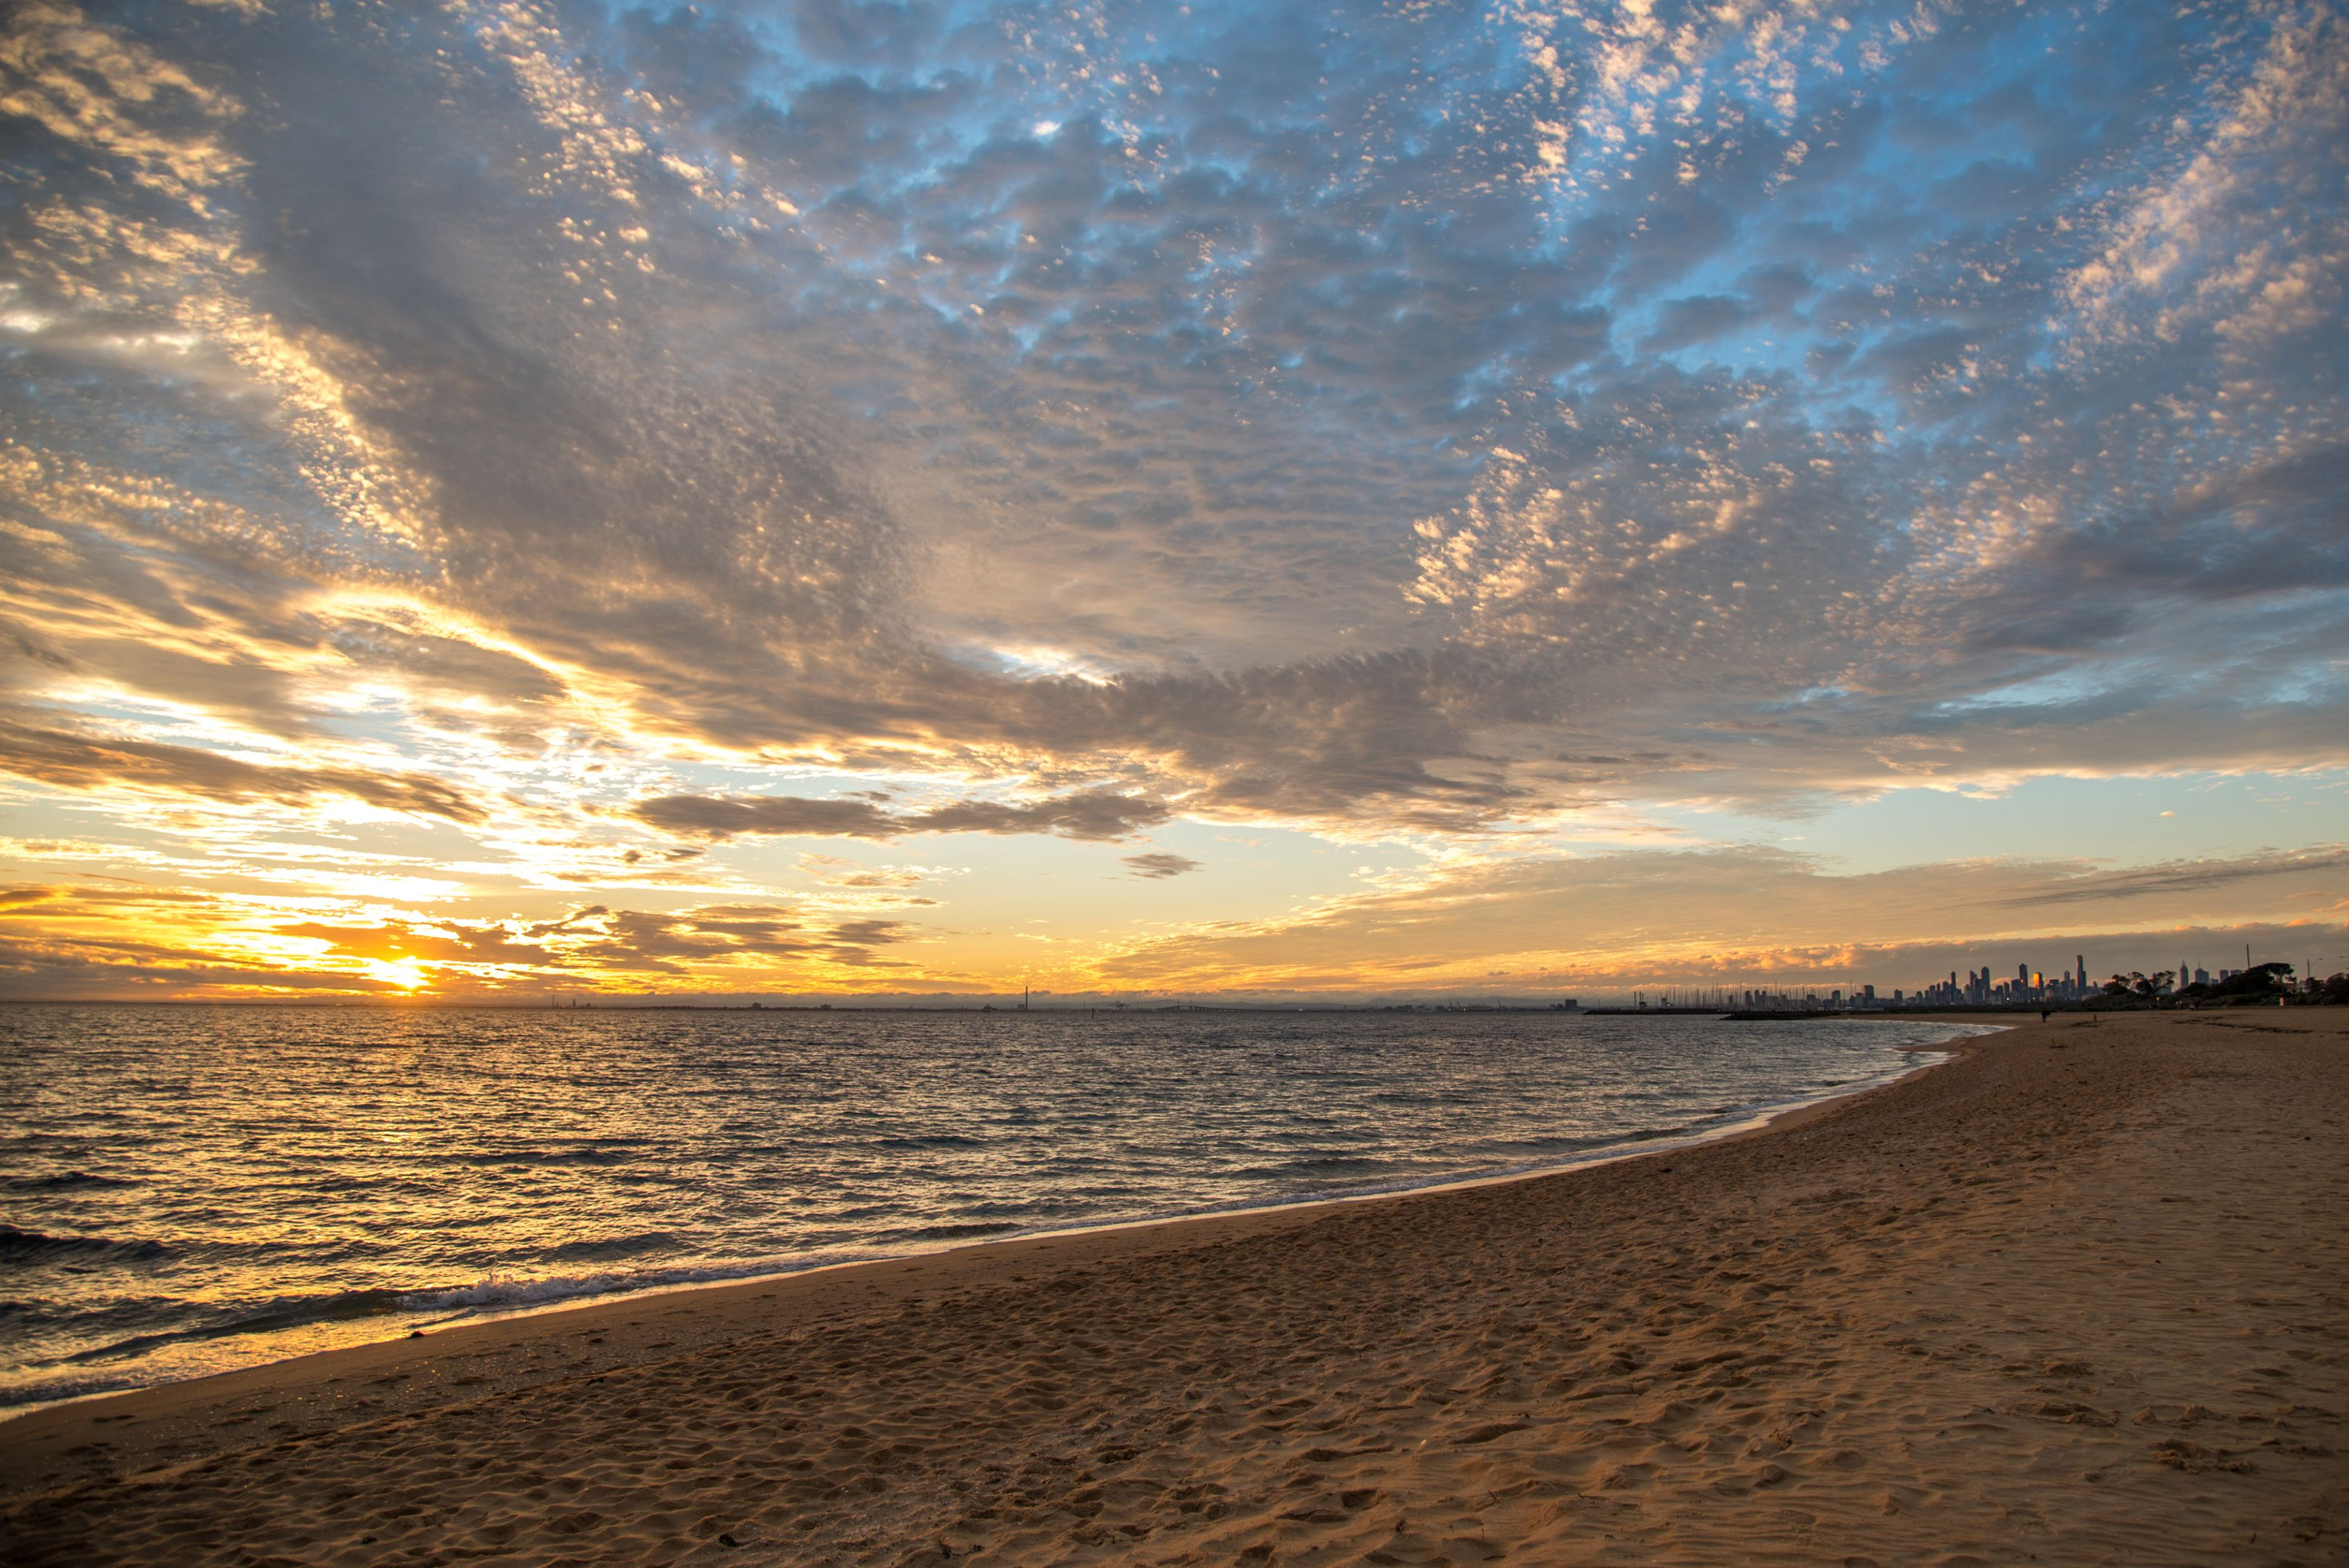 Sunset at Brighton Beach, Melbourne with the city in the background